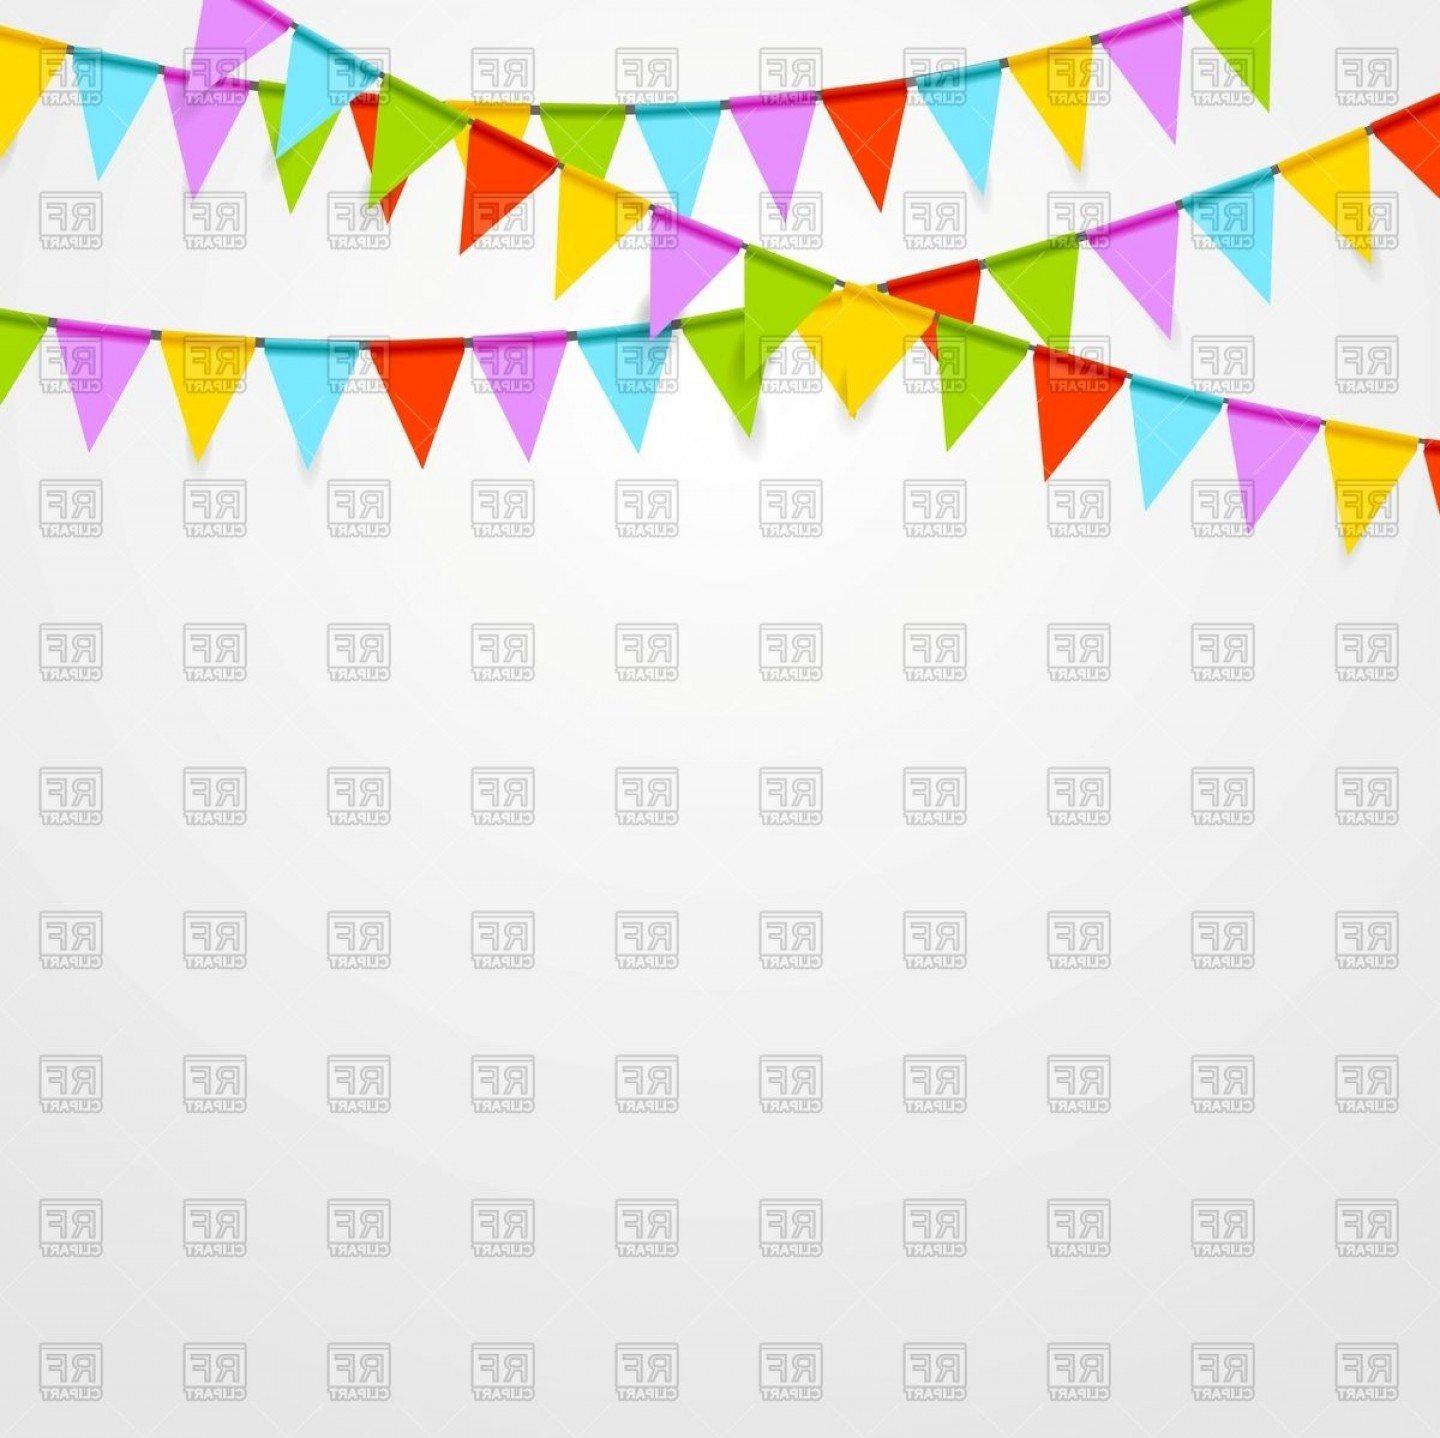 Party background clipart image free stock Party Flags Background Vector Clipart | SOIDERGI image free stock